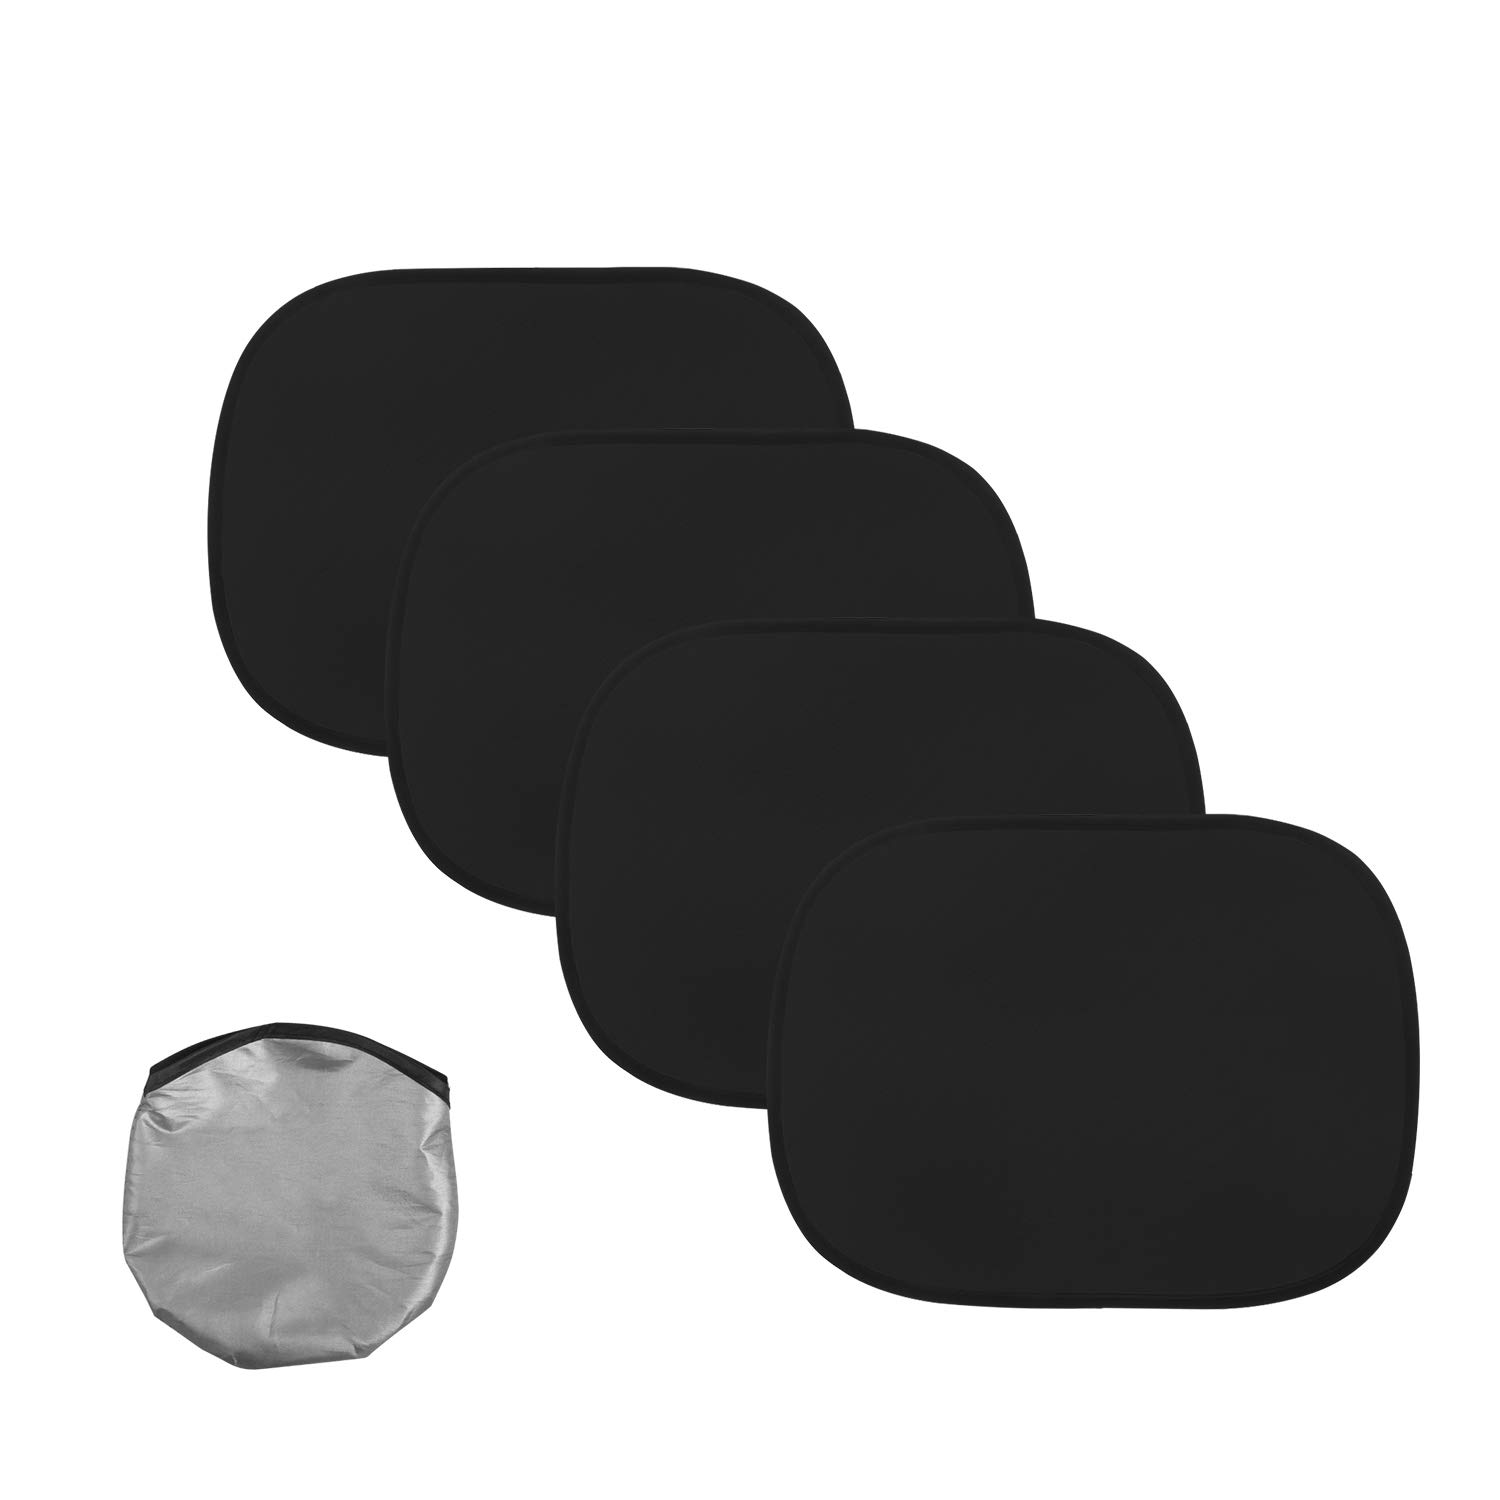 Car Sun Shade 17x15,Car Window Shades 2Pack Car Side Window Sun Shade for Baby,Side Window Sunshades Protect for Kids Pets,Baby Sunshade for Car,80 GSM with 15s Film,Auto Sun Shades Blocking Sun